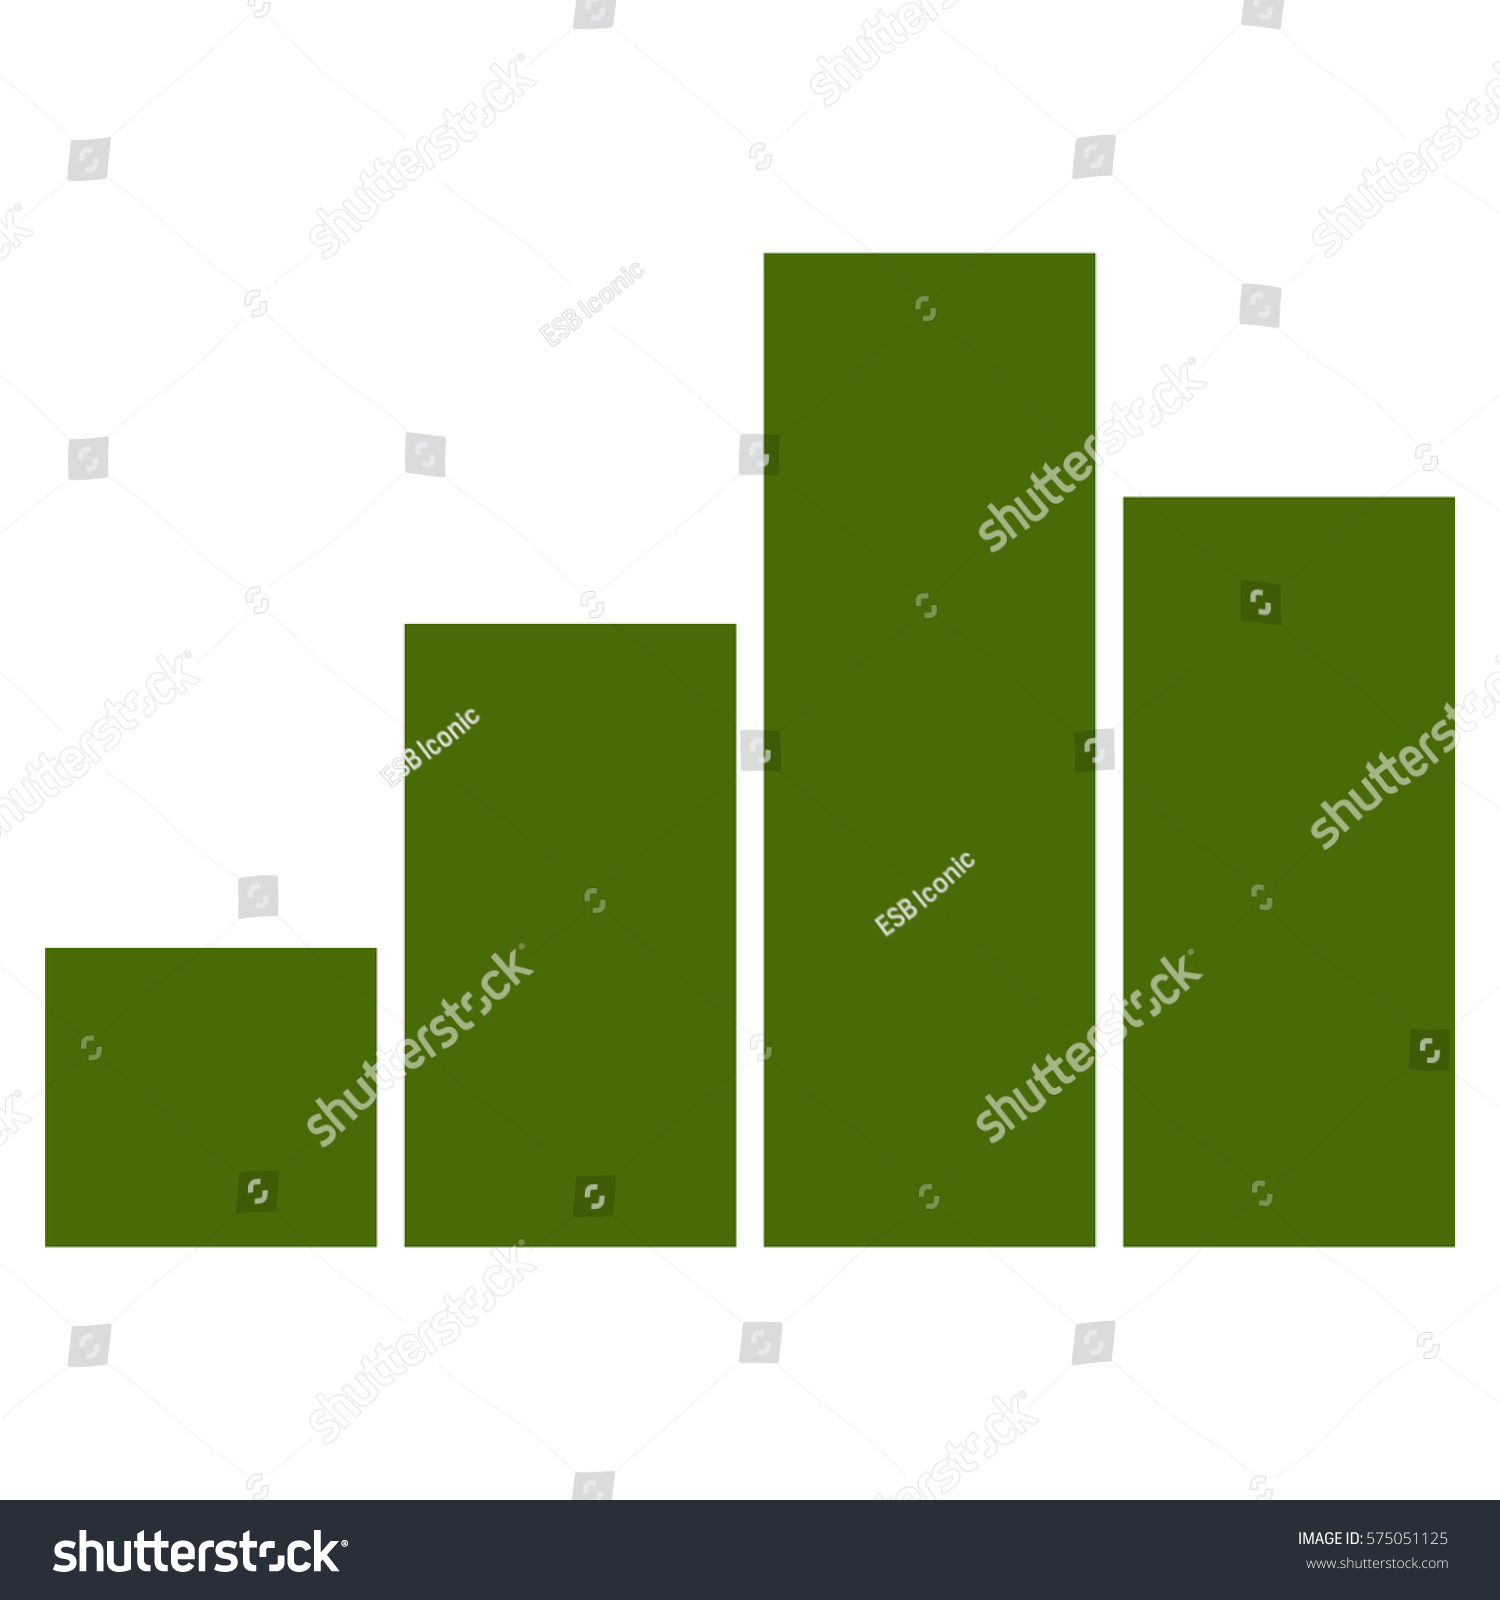 stock vector vector illustration of bar chart in green icon 575051125 swot icon wiring diagrams wiring diagrams flat design letters for th8320r1003 wiring diagrams at couponss.co